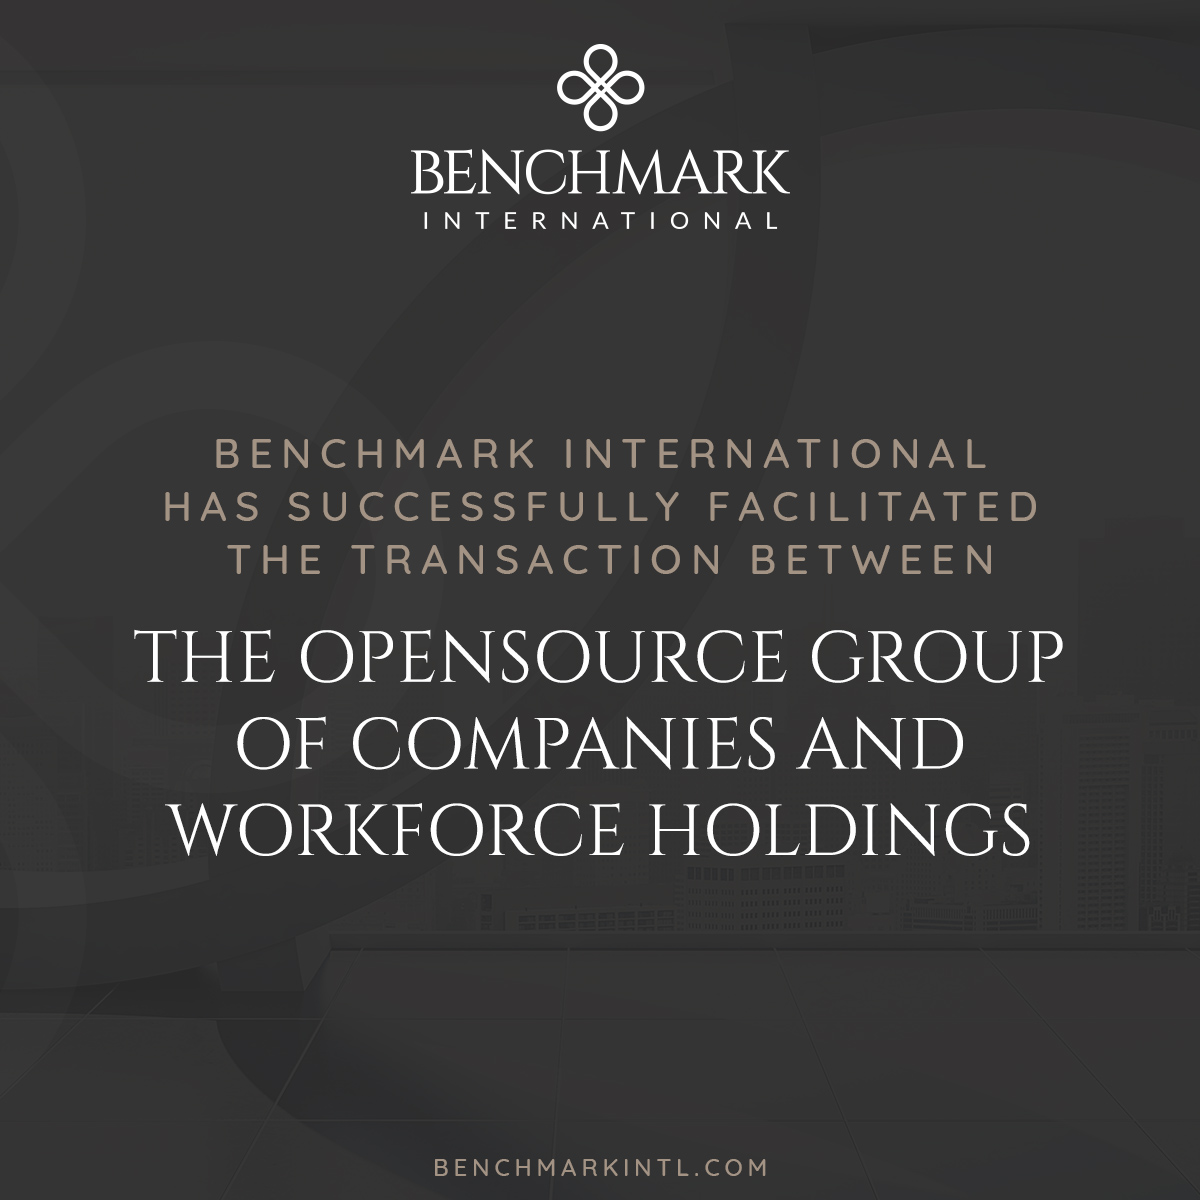 THE_OPENSOURCE_GROUP_OF_COMPANIES_AND_WORKFORCE_HOLDINGS_Social